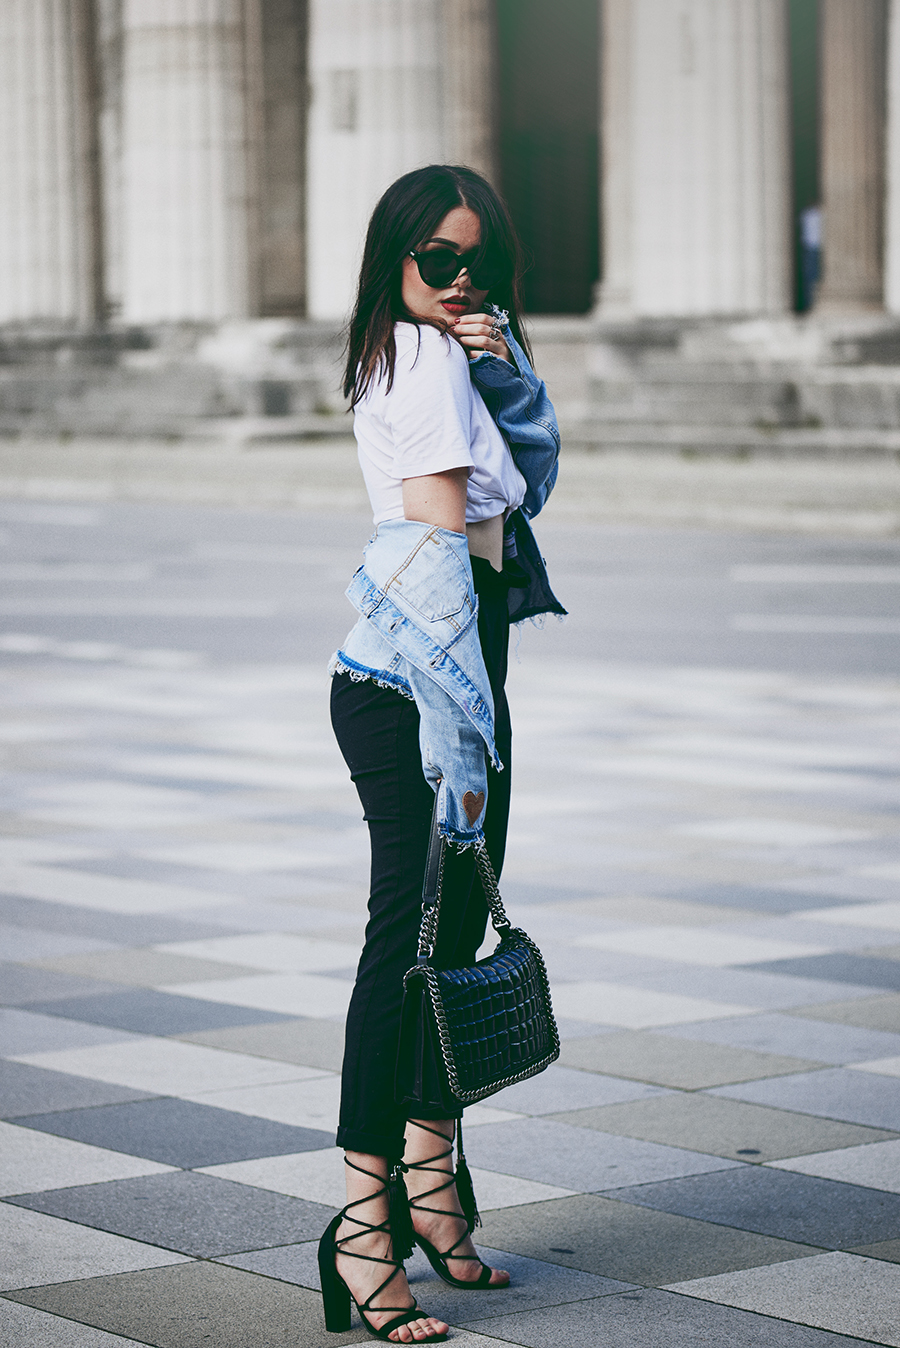 Fashion-Blog-München-Deutschland-Germany-Munich-Beauty-Travel-Lifestyle-Blogger-Magdalena-Fuez-Fuess-edited-the-label-edited-onlineshop-Le-Specs-Sonnenbrille-Blogger-Outfit-Levis-Jeansjacke-High-Waist-Hose-thesecondface